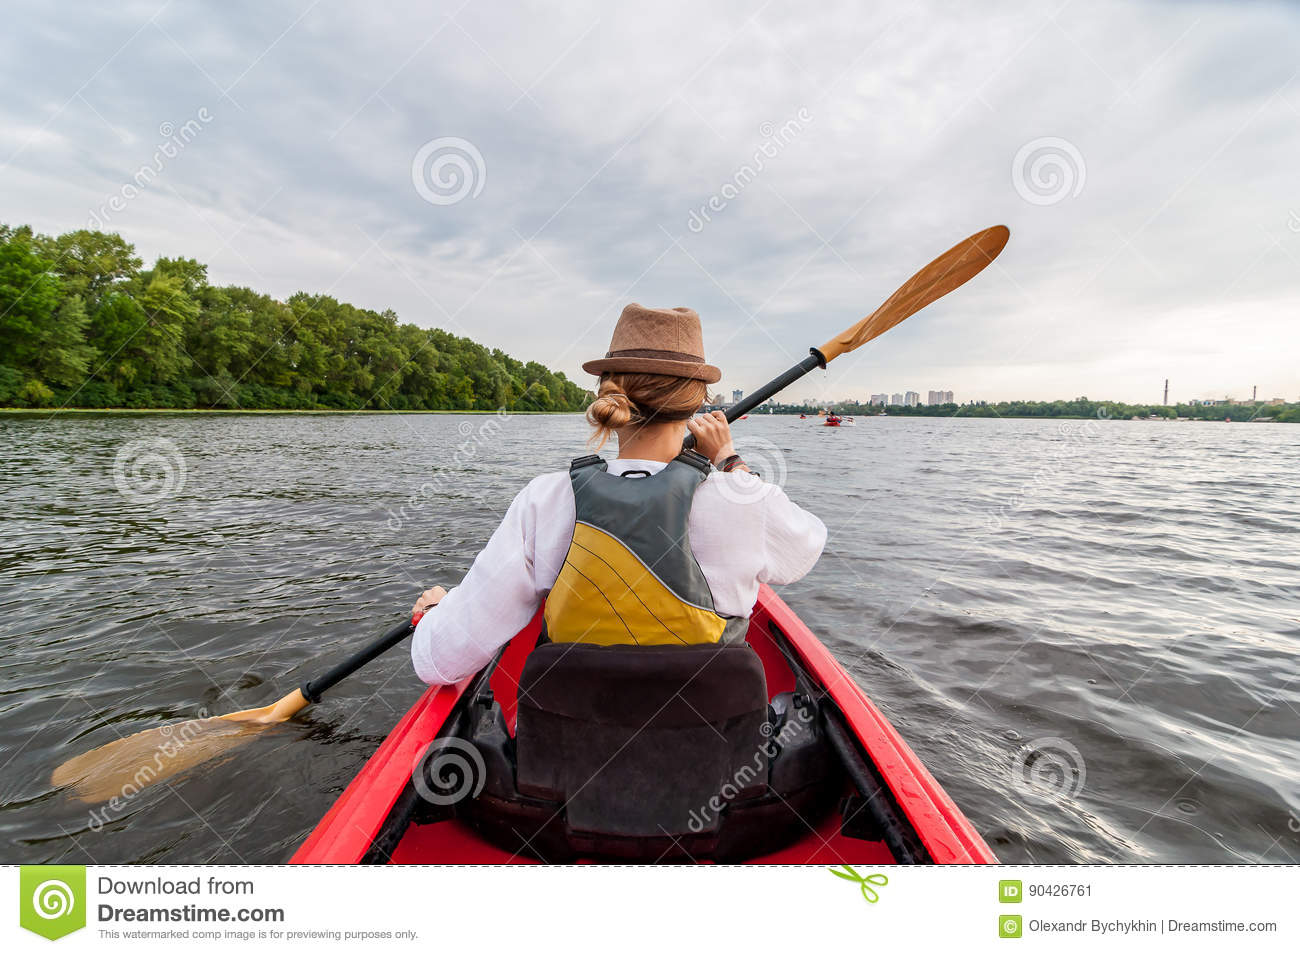 Kayaking travel. Young lady paddling the red kayak. Back view. Holiday and summer adventure